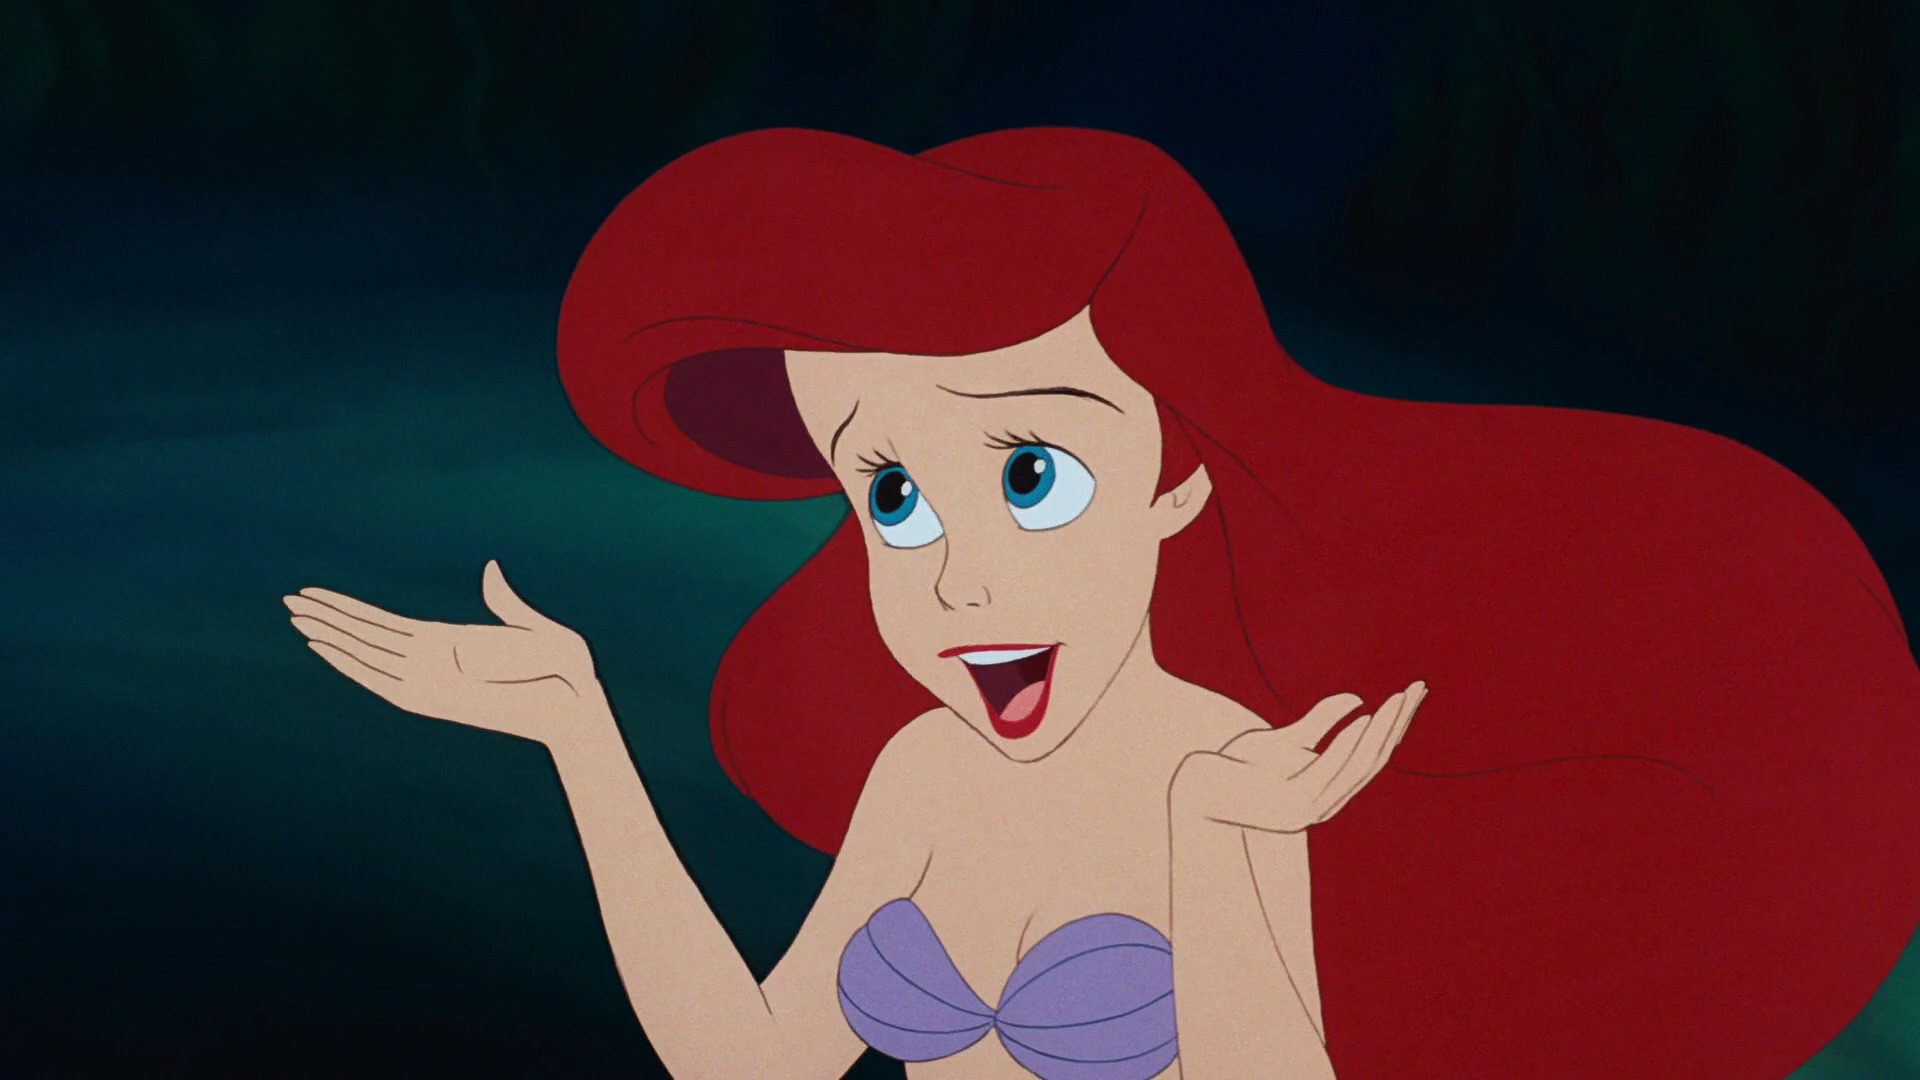 image ariel personnage petite sirene ariel character from little mermaid disney animation